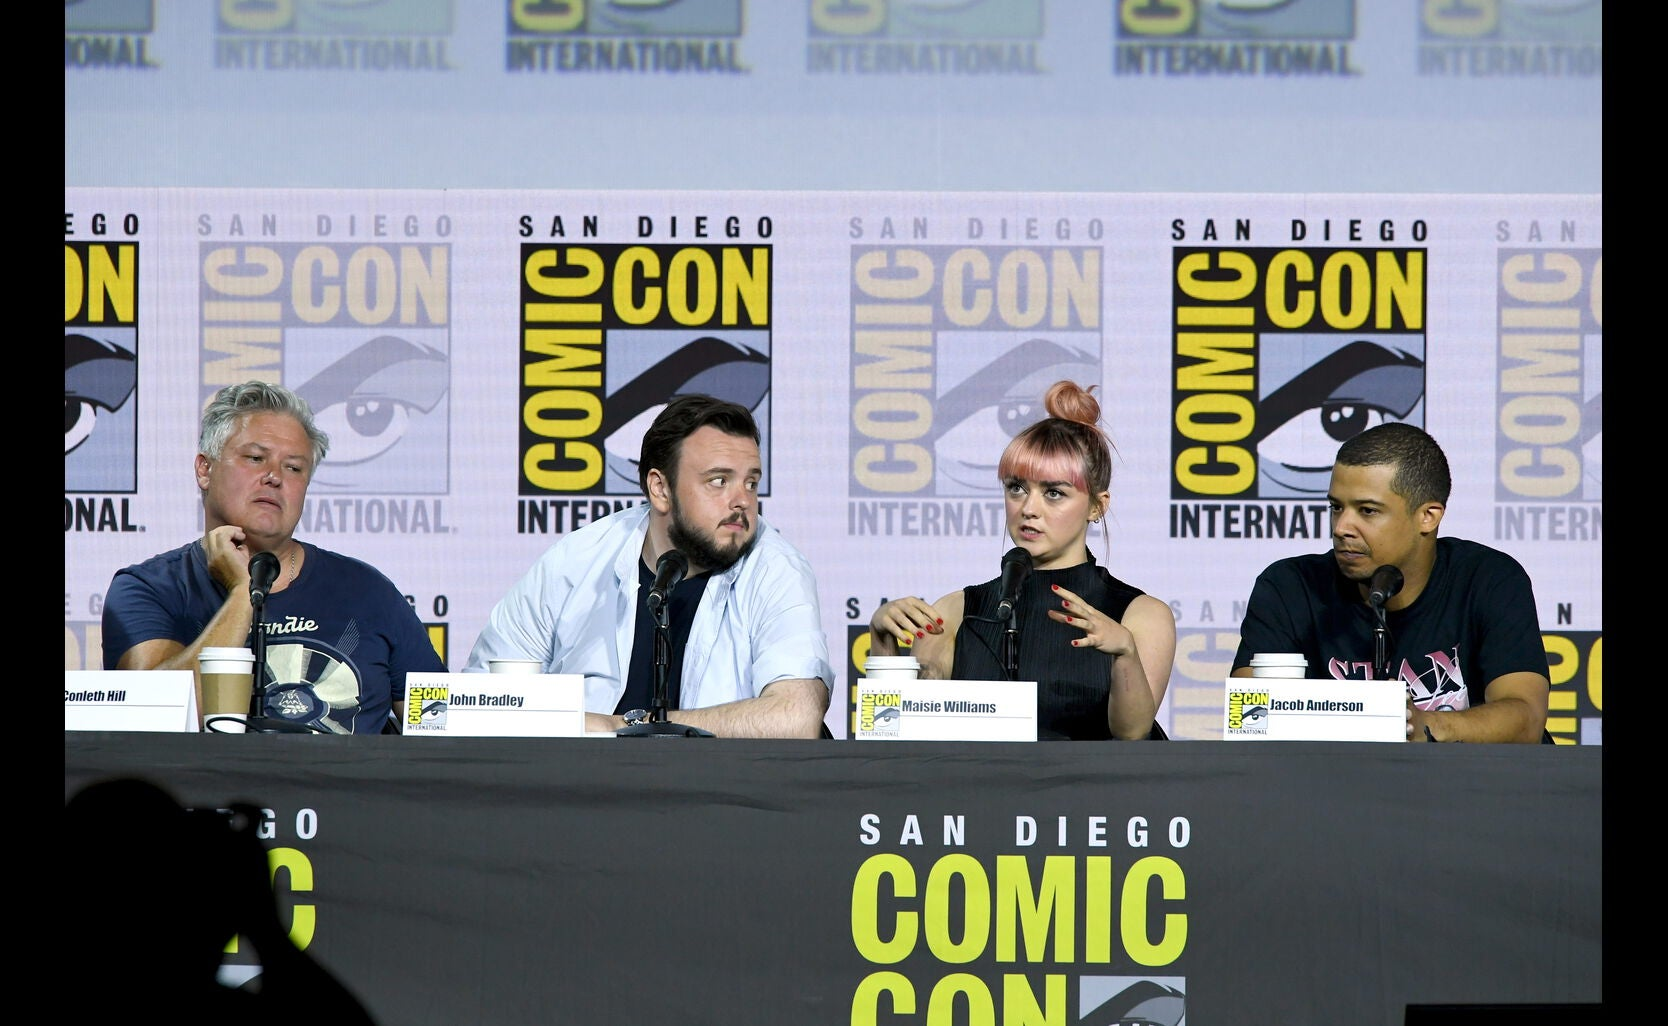 The Game of Thrones panel at SDCC 2019